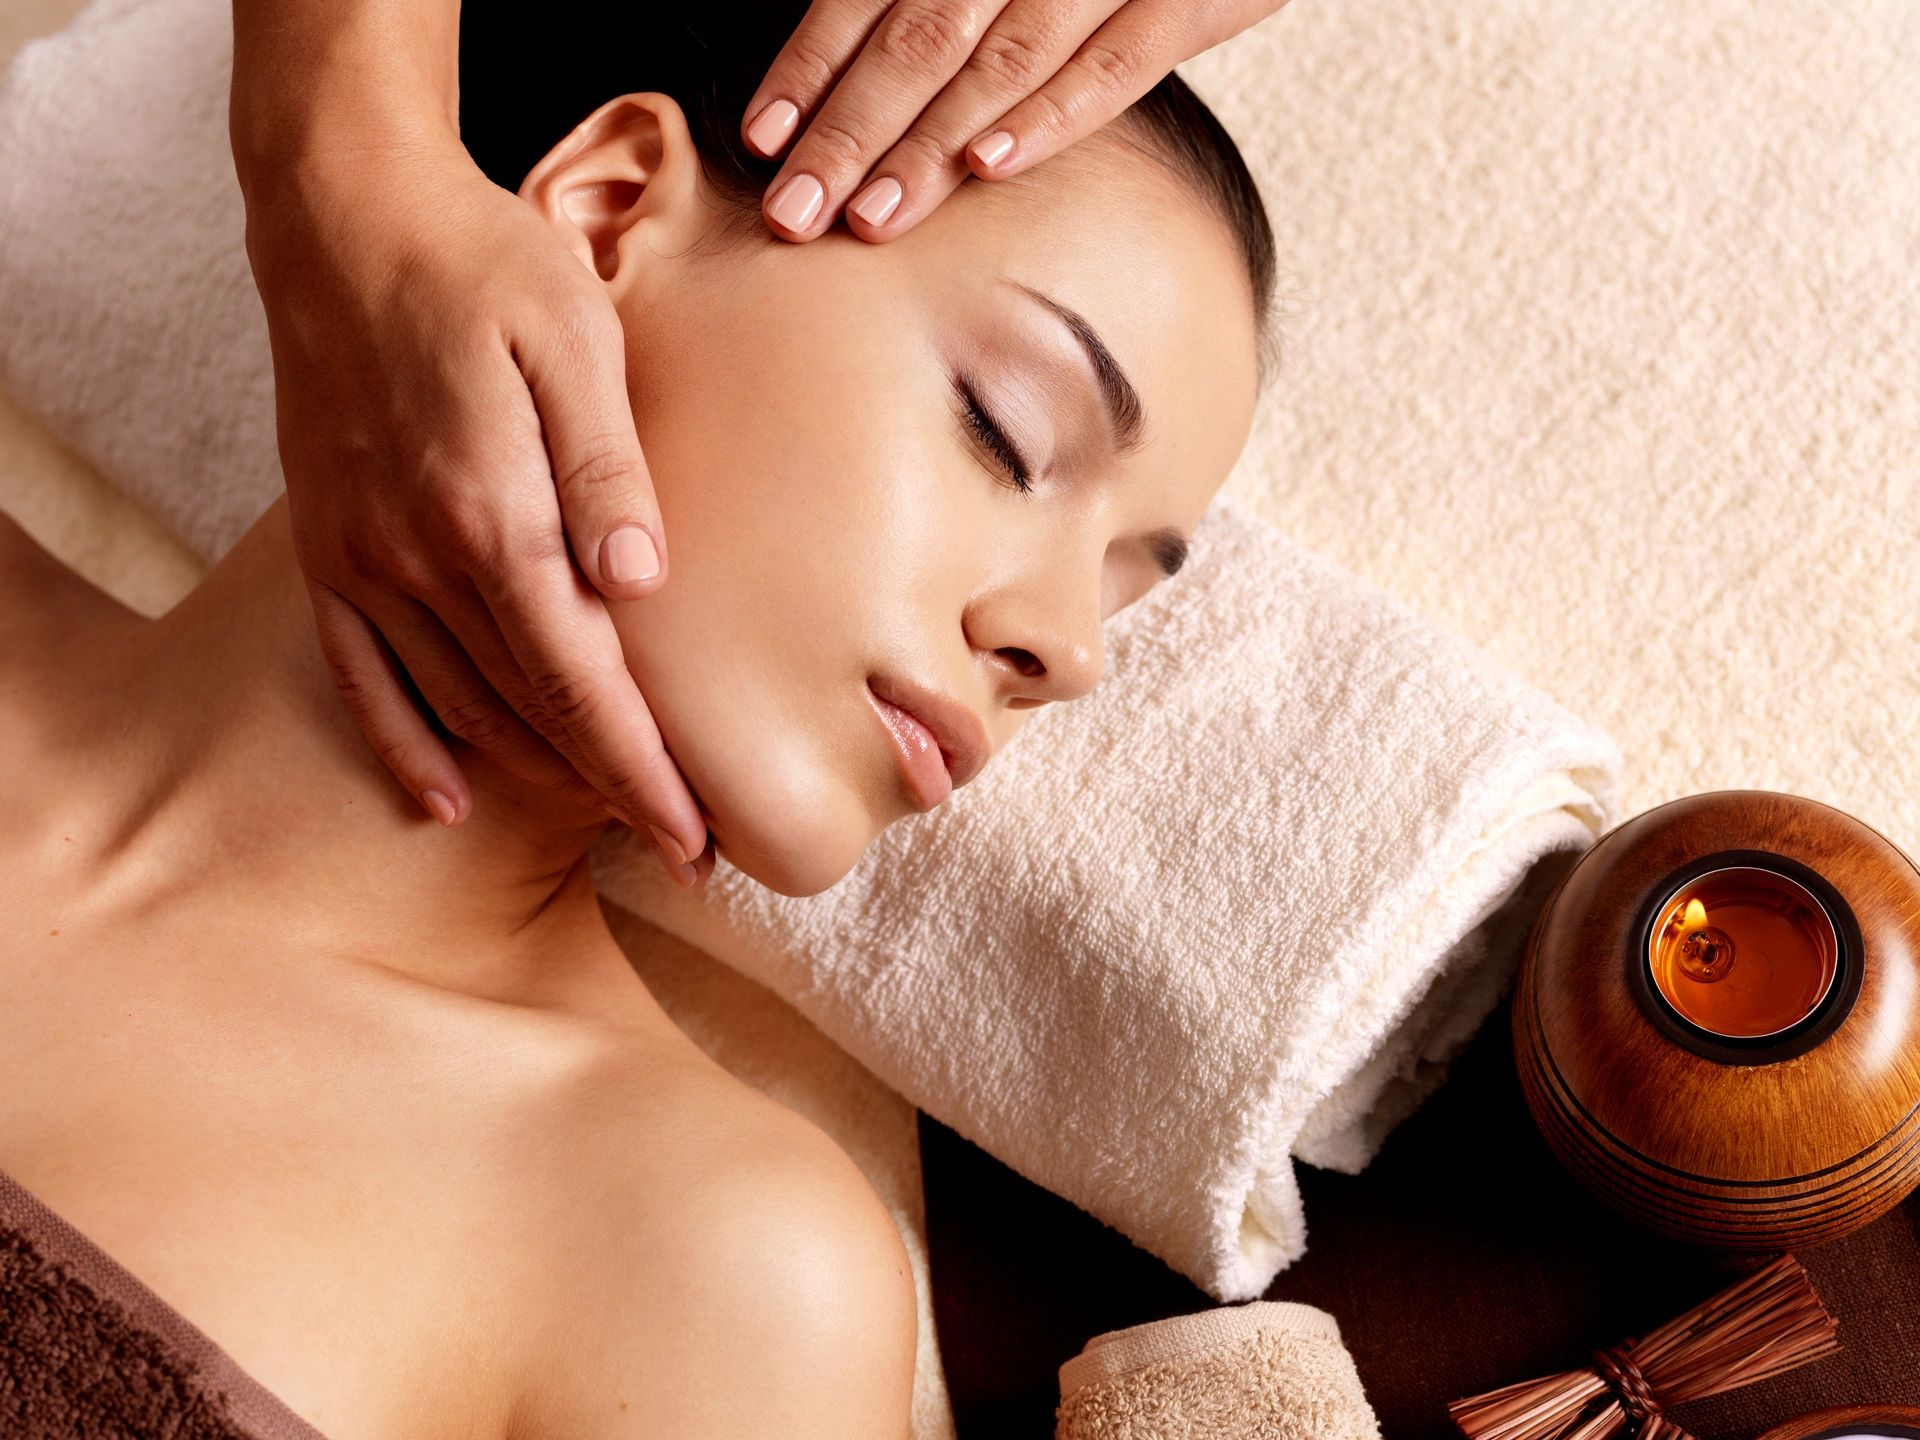 qtq80-KPBnhJ Massage Treatments Tampa